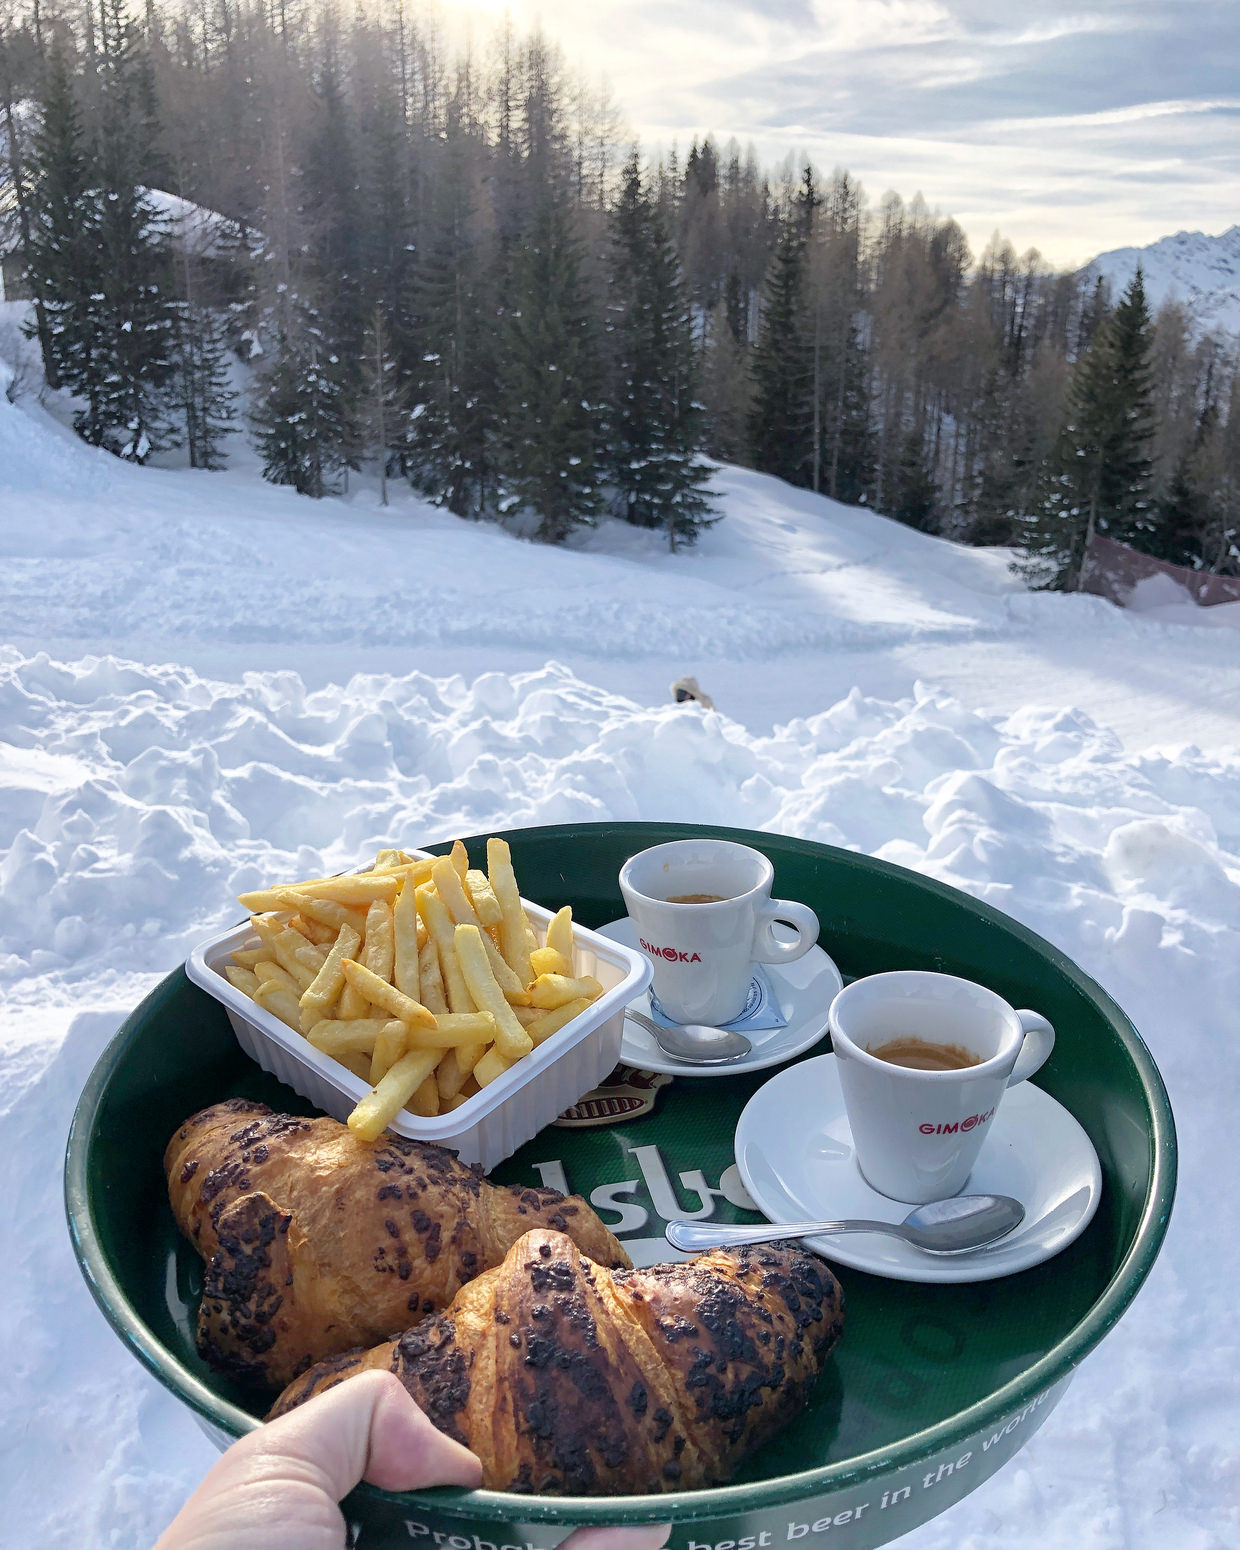 Croissants, coffee and chips in the snow